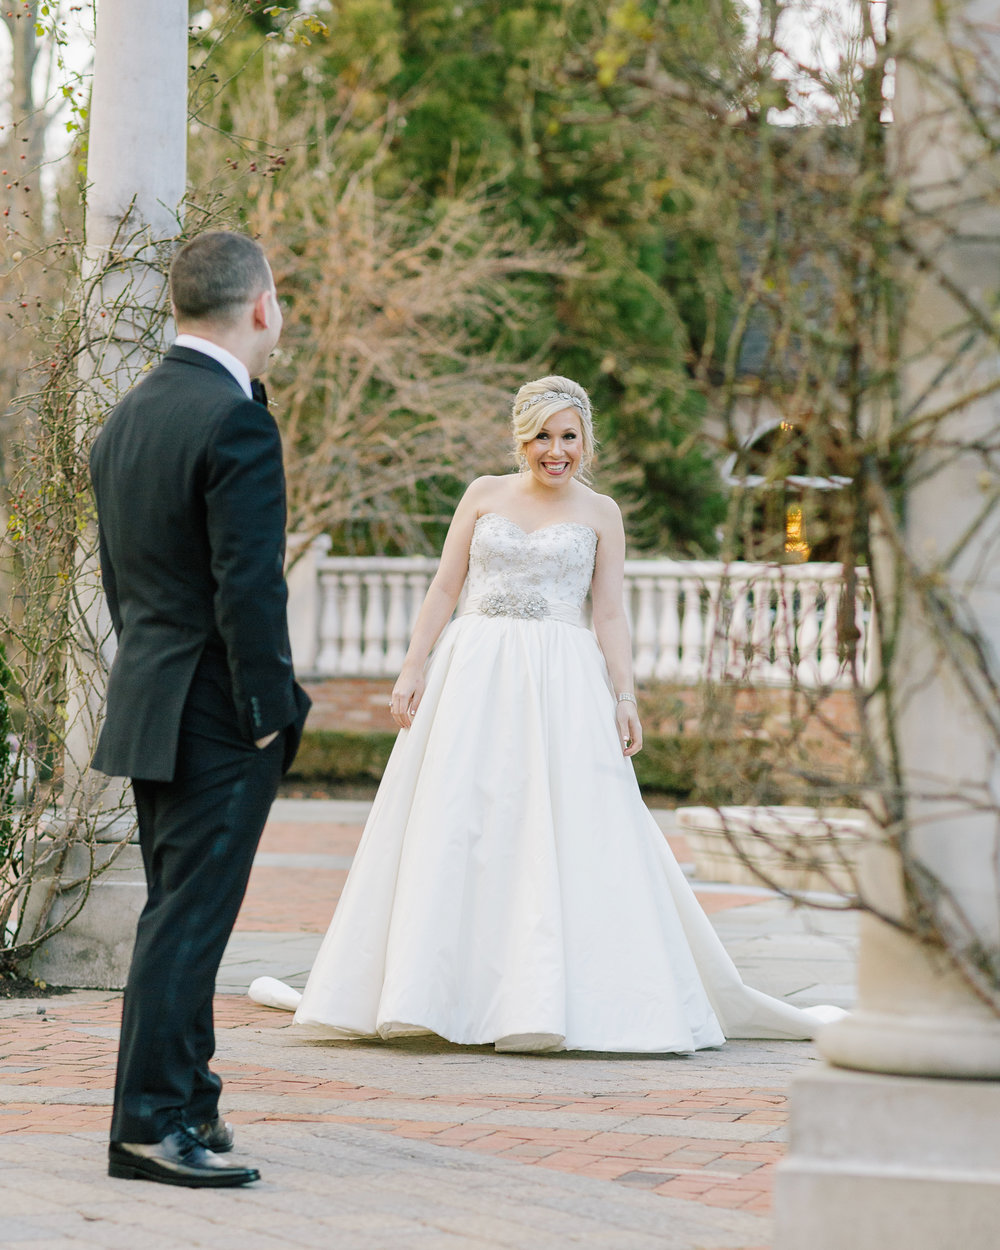 A cold December day didn't stop Taylor from enjoying this moment with groom Adam.